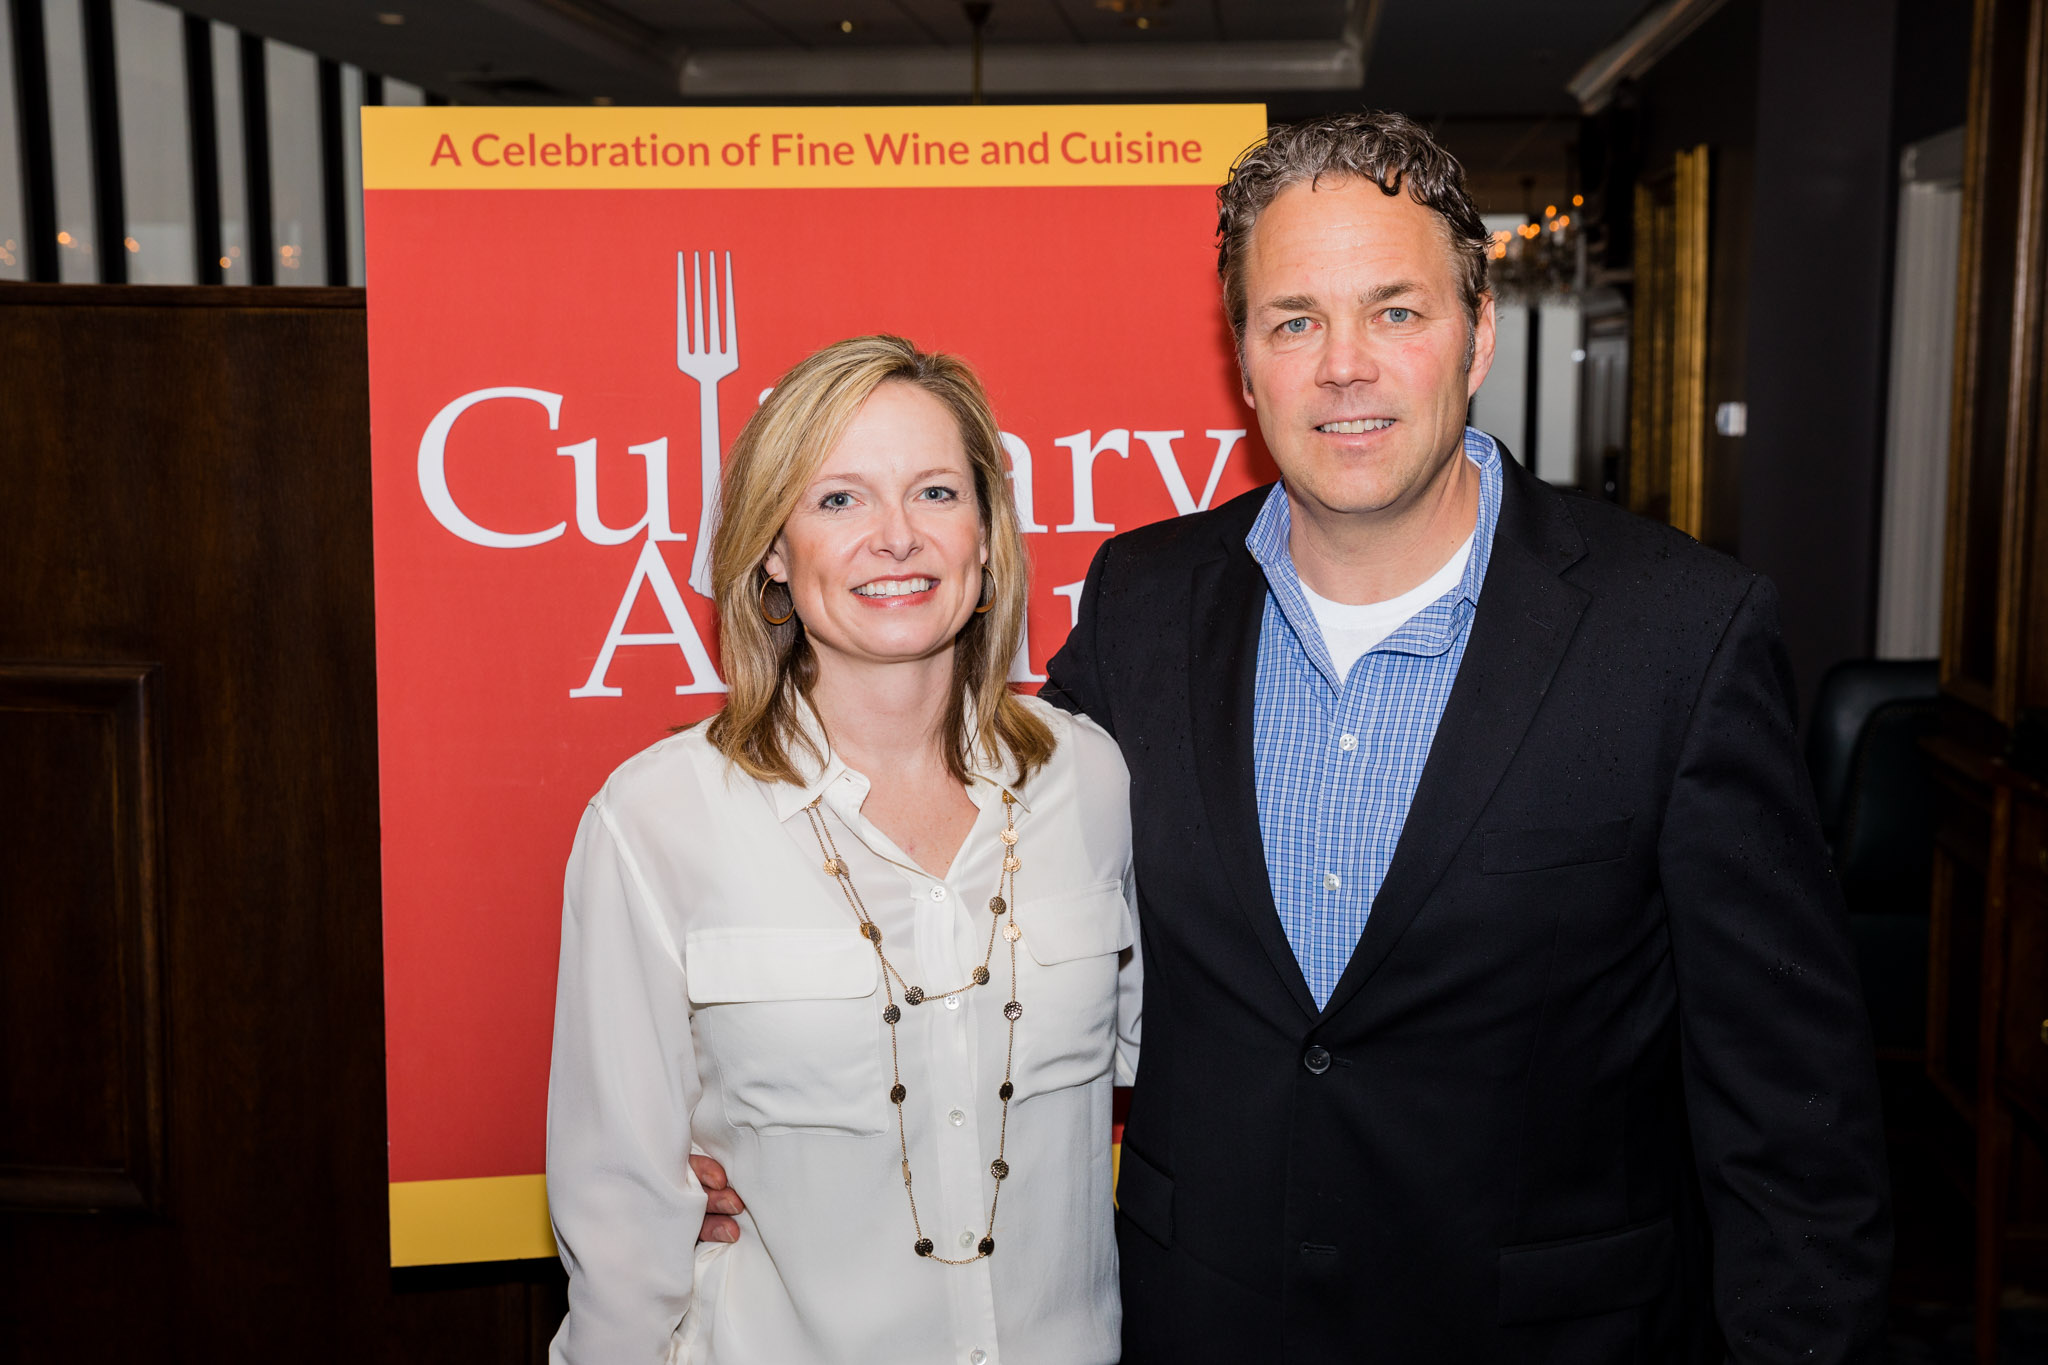 Culinary Affair at Des Moines Embassy Club